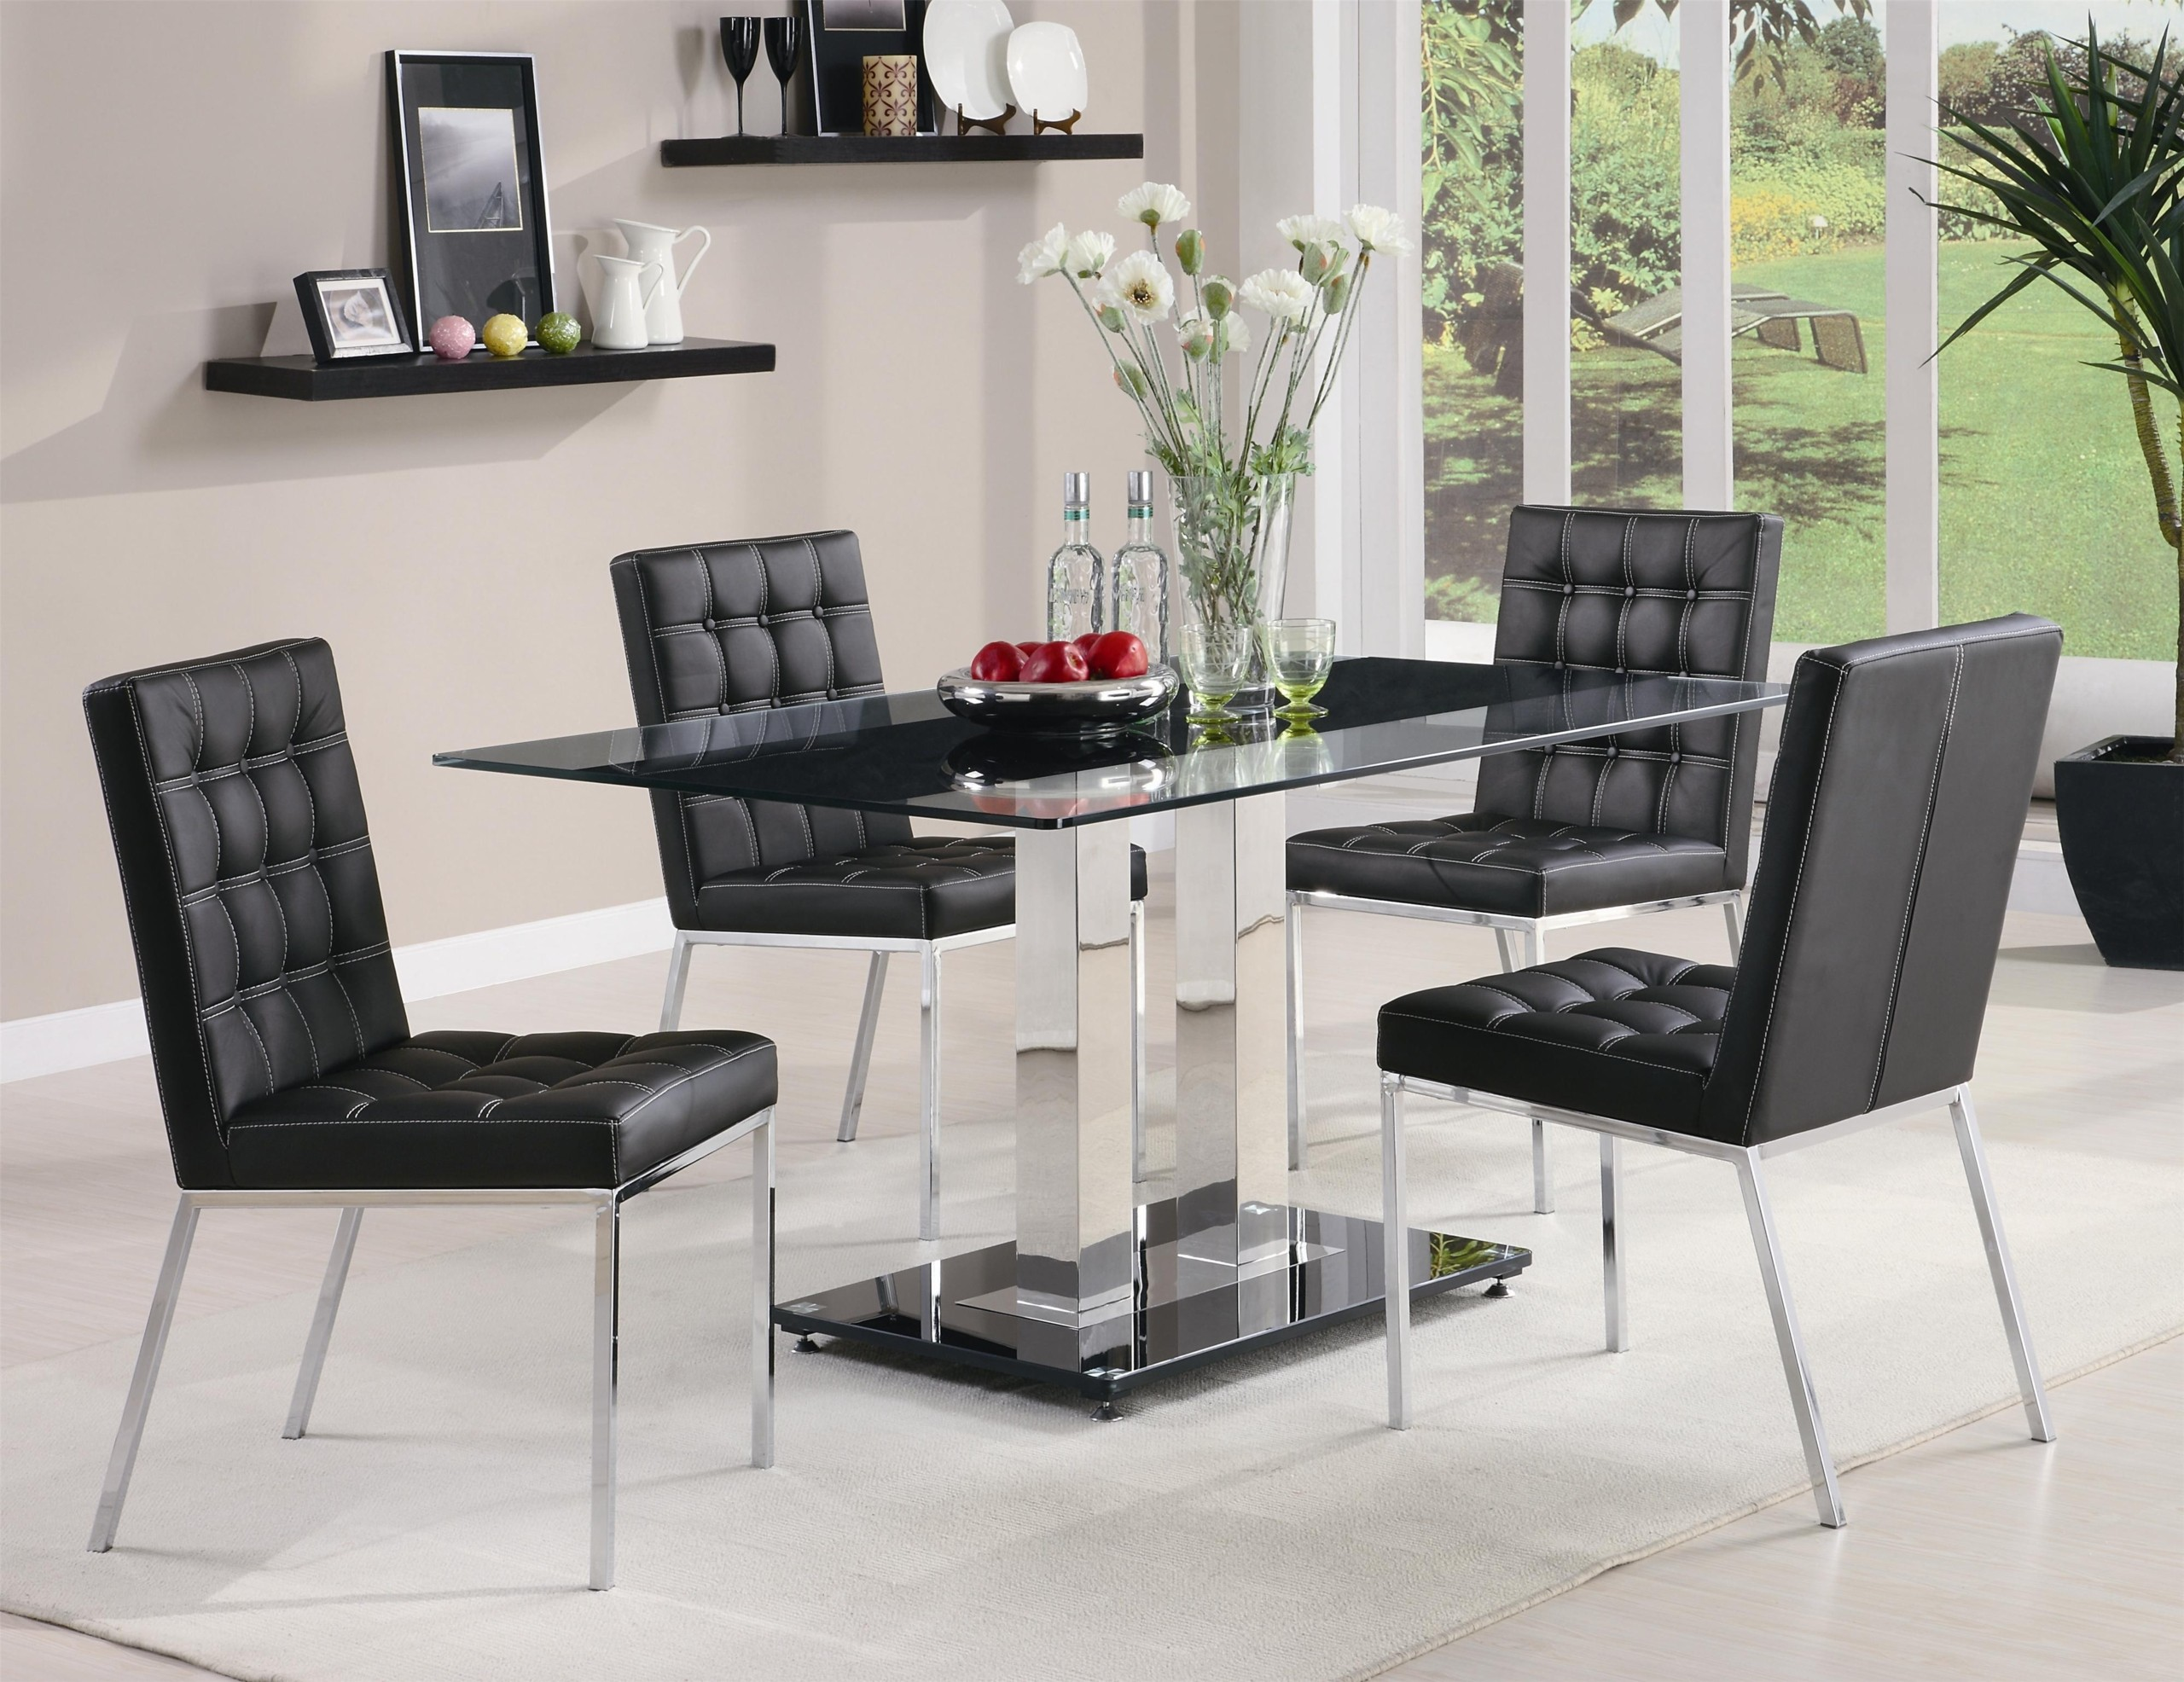 Metal Dining Room Table Bases